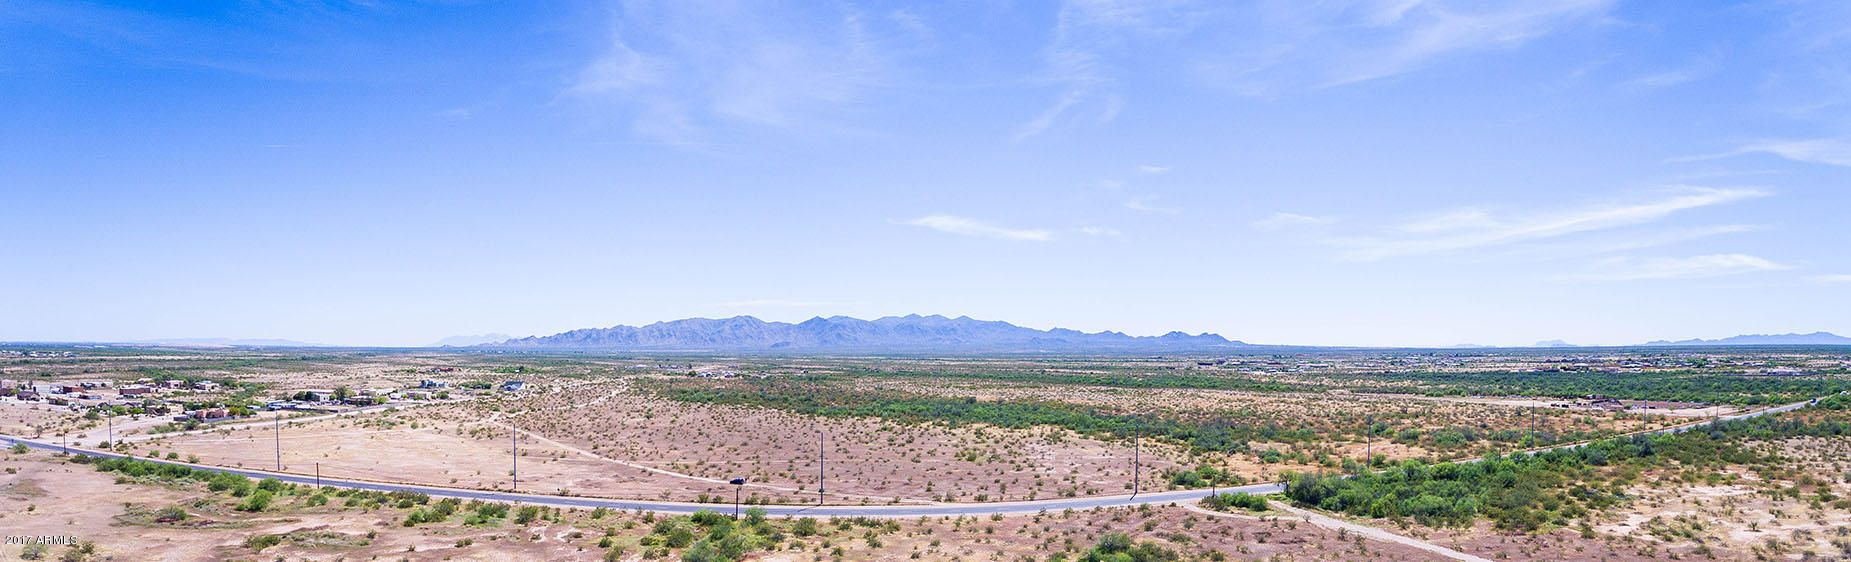 23100 W Patton Road Wittmann, AZ 85361 - MLS #: 5581181